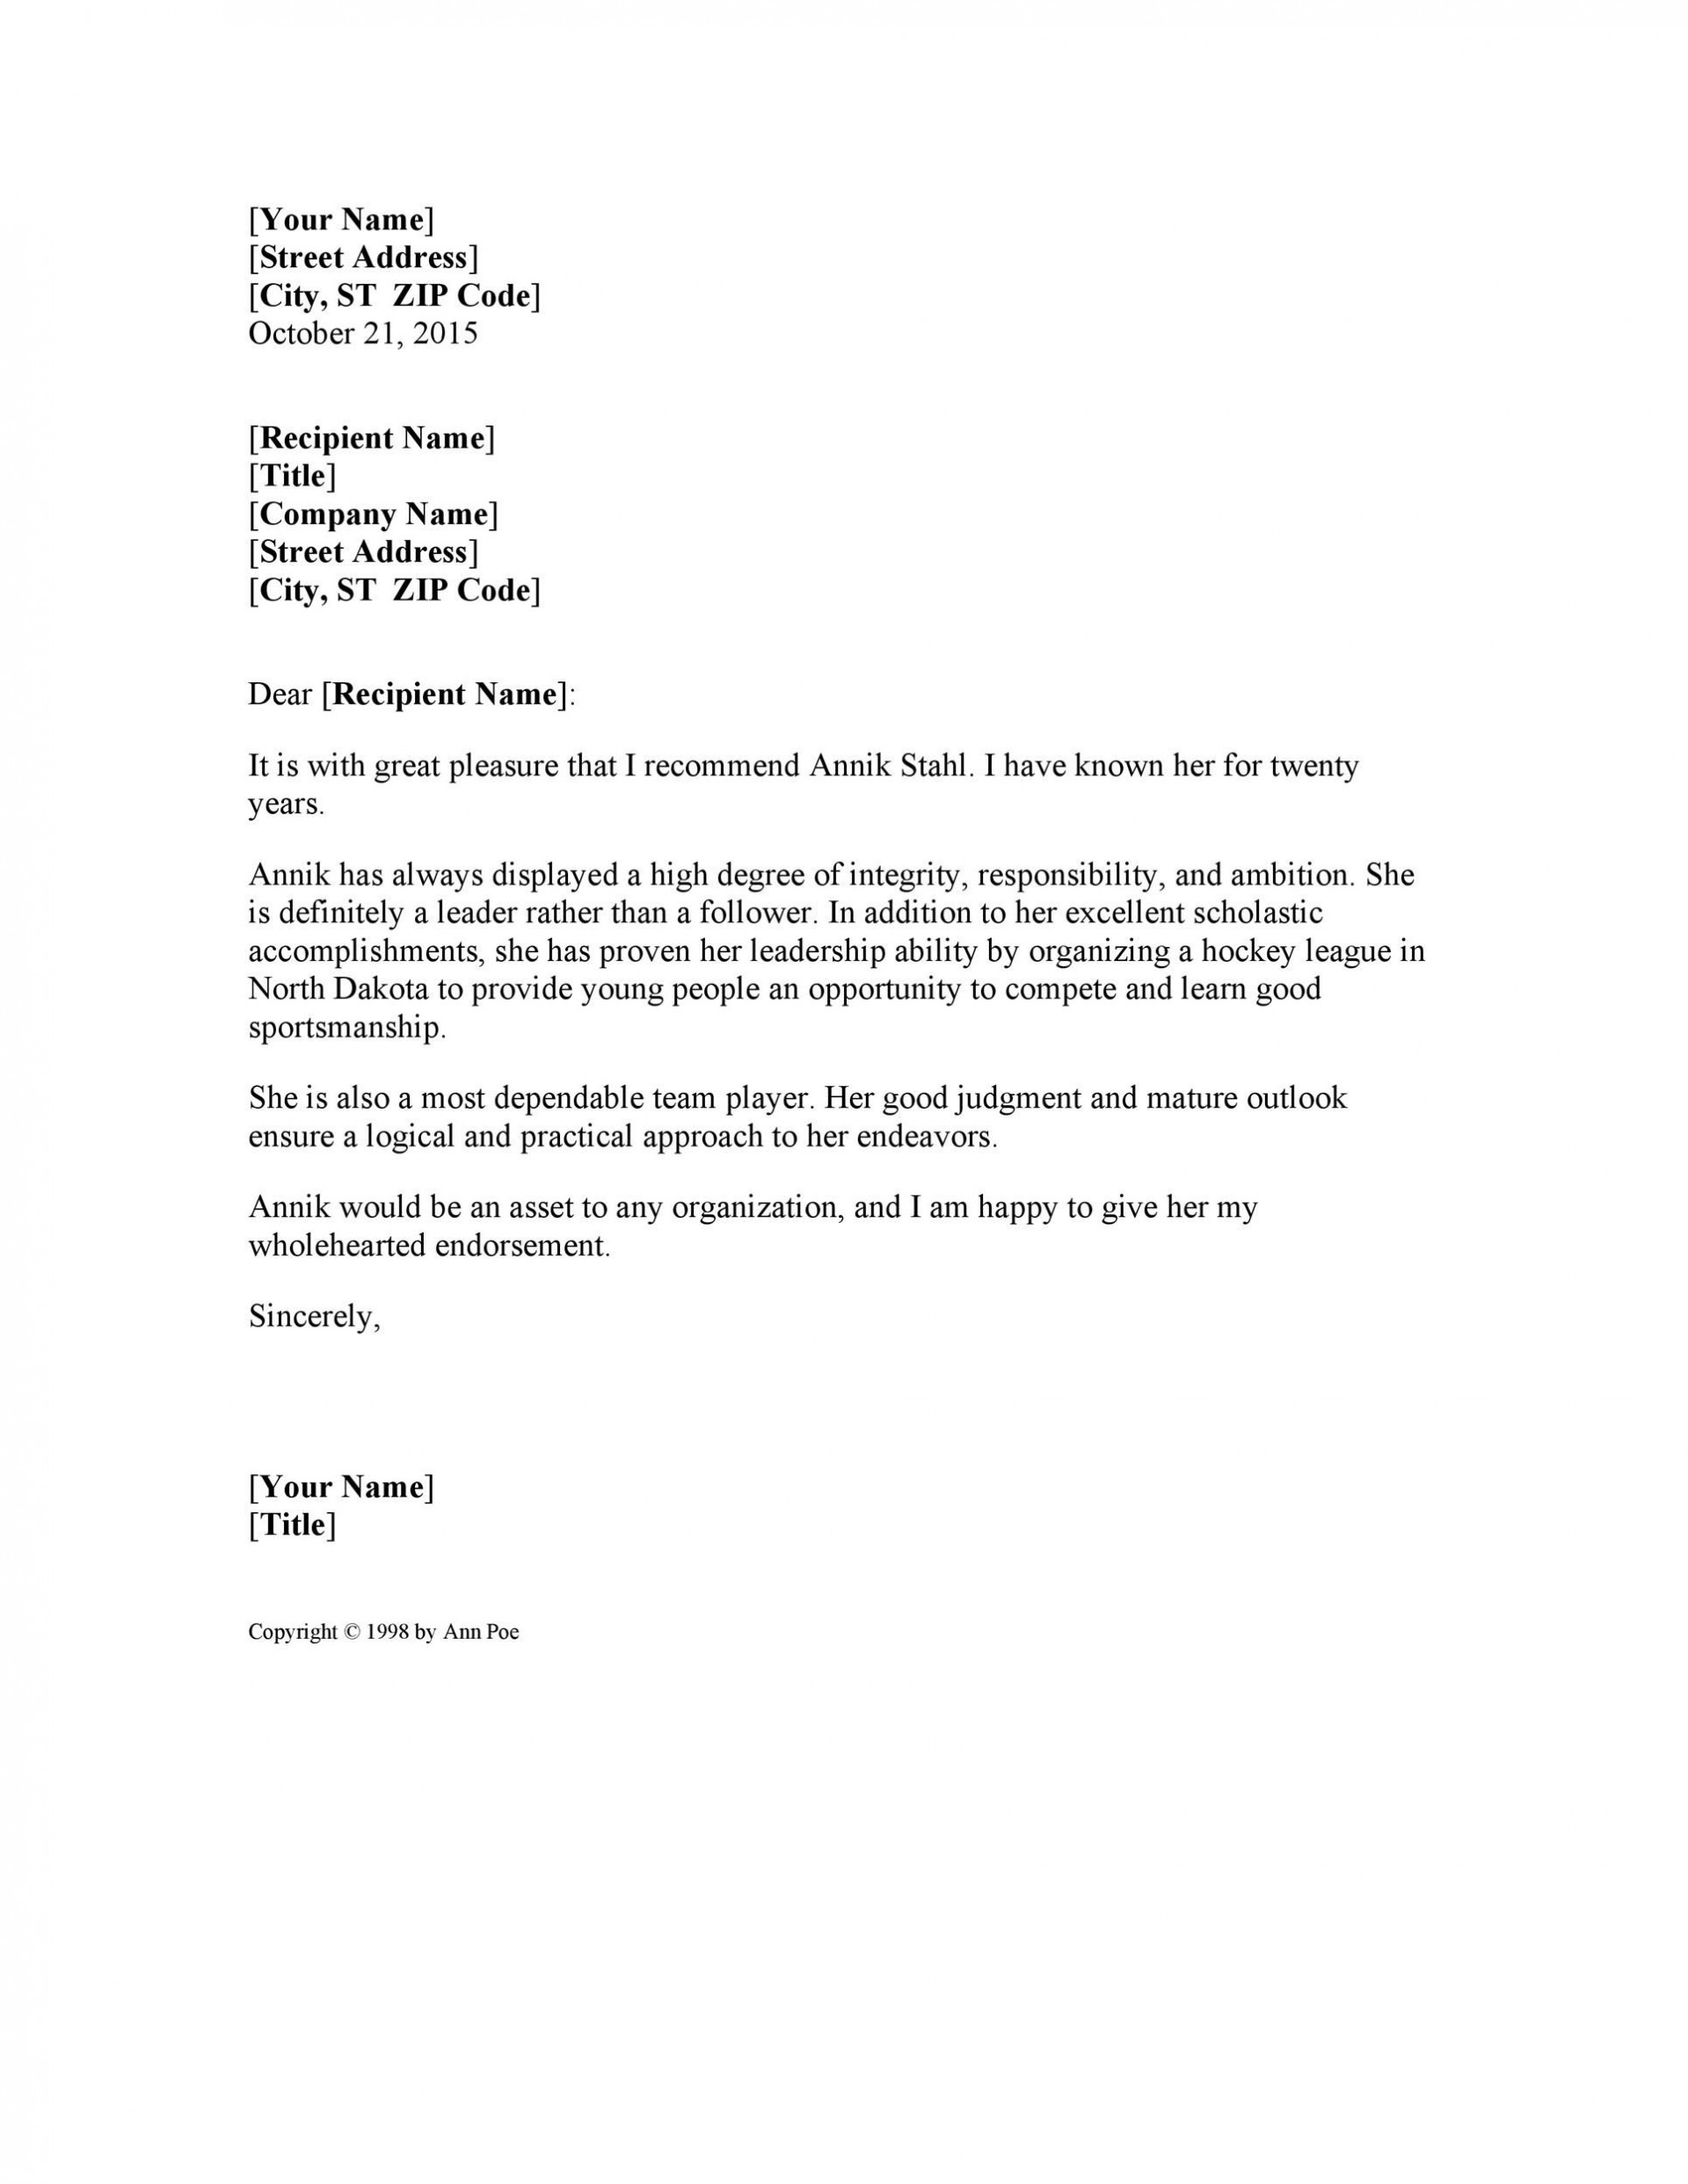 007 Awful Personal Letter Of Recommendation Template Highest Quality  Sample Character Reference Assistant1920